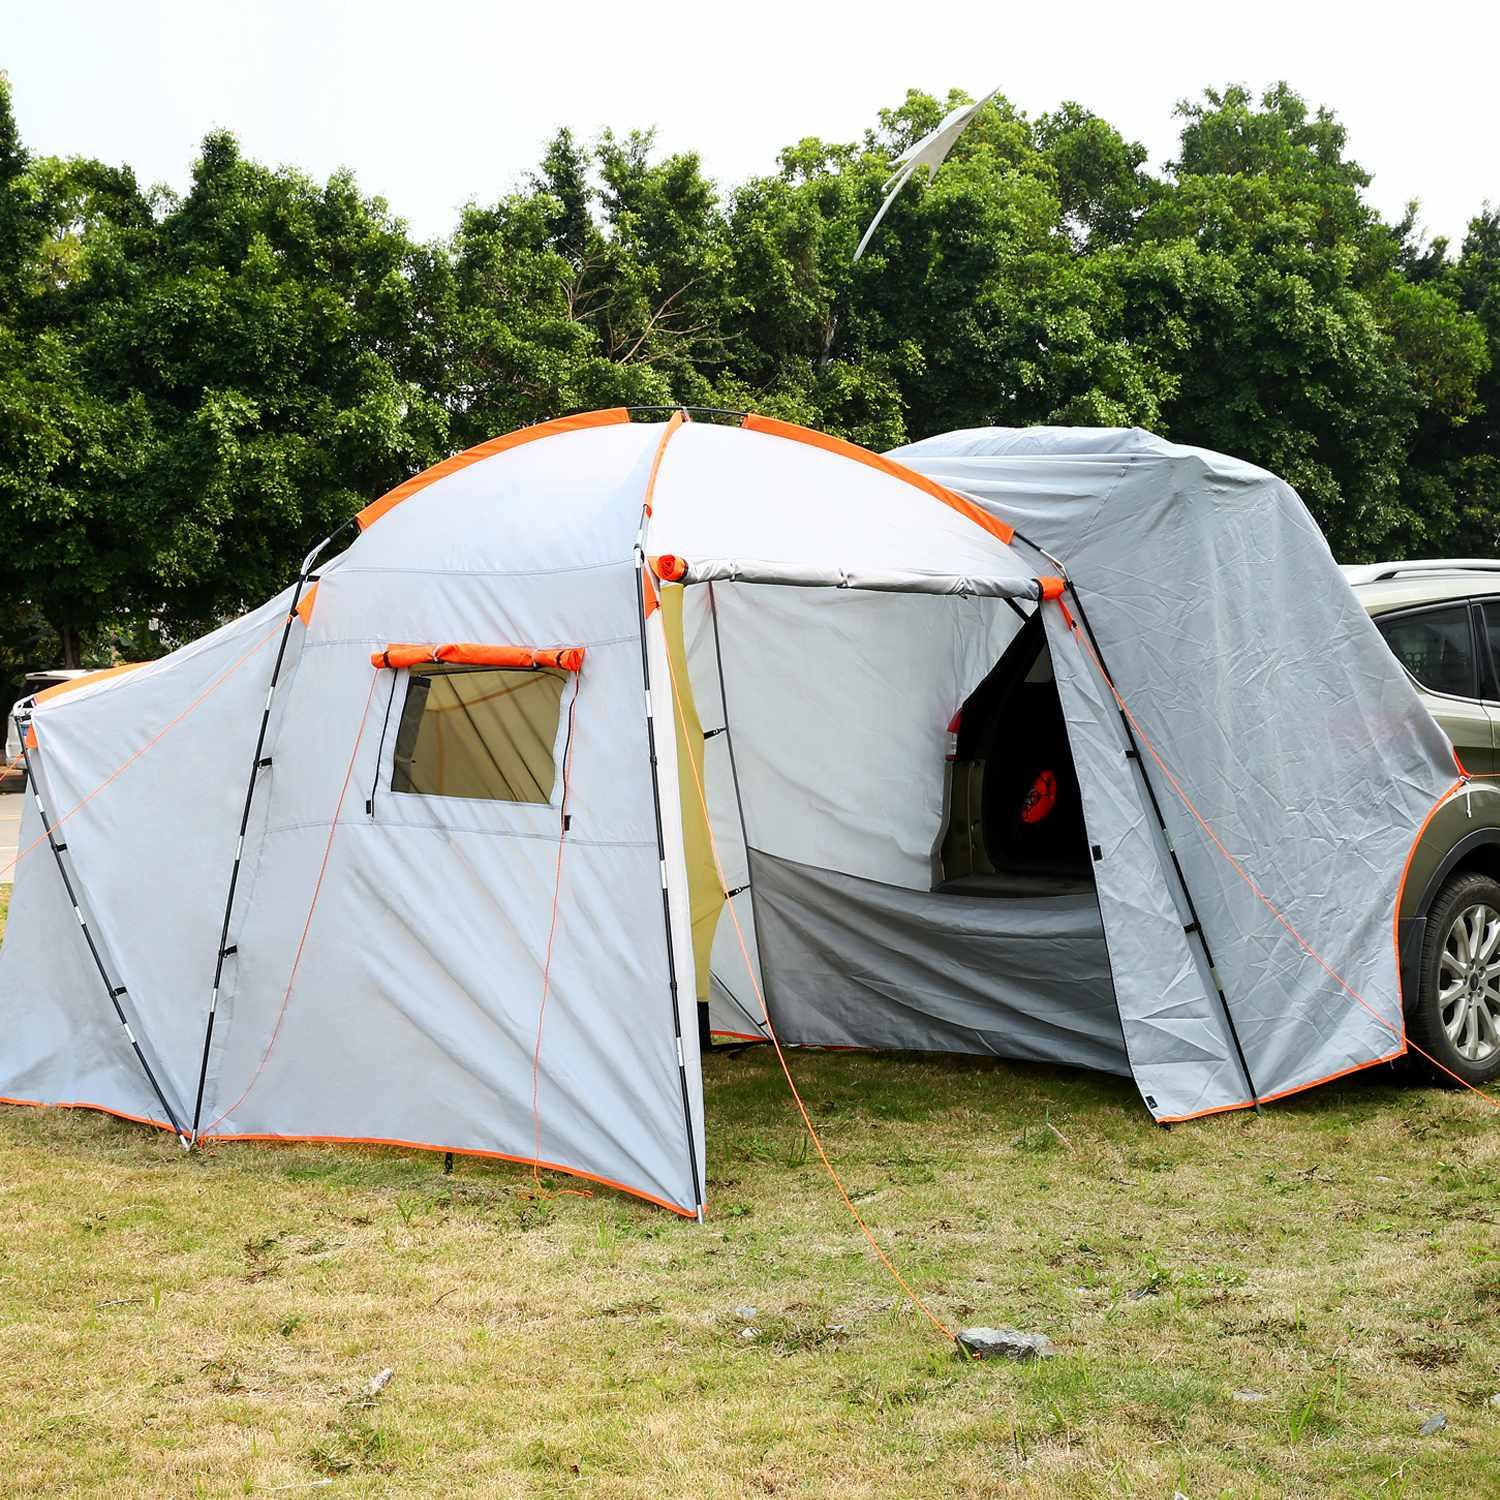 10 Best SUV Tents for Small Family Camping Trip to Buy in